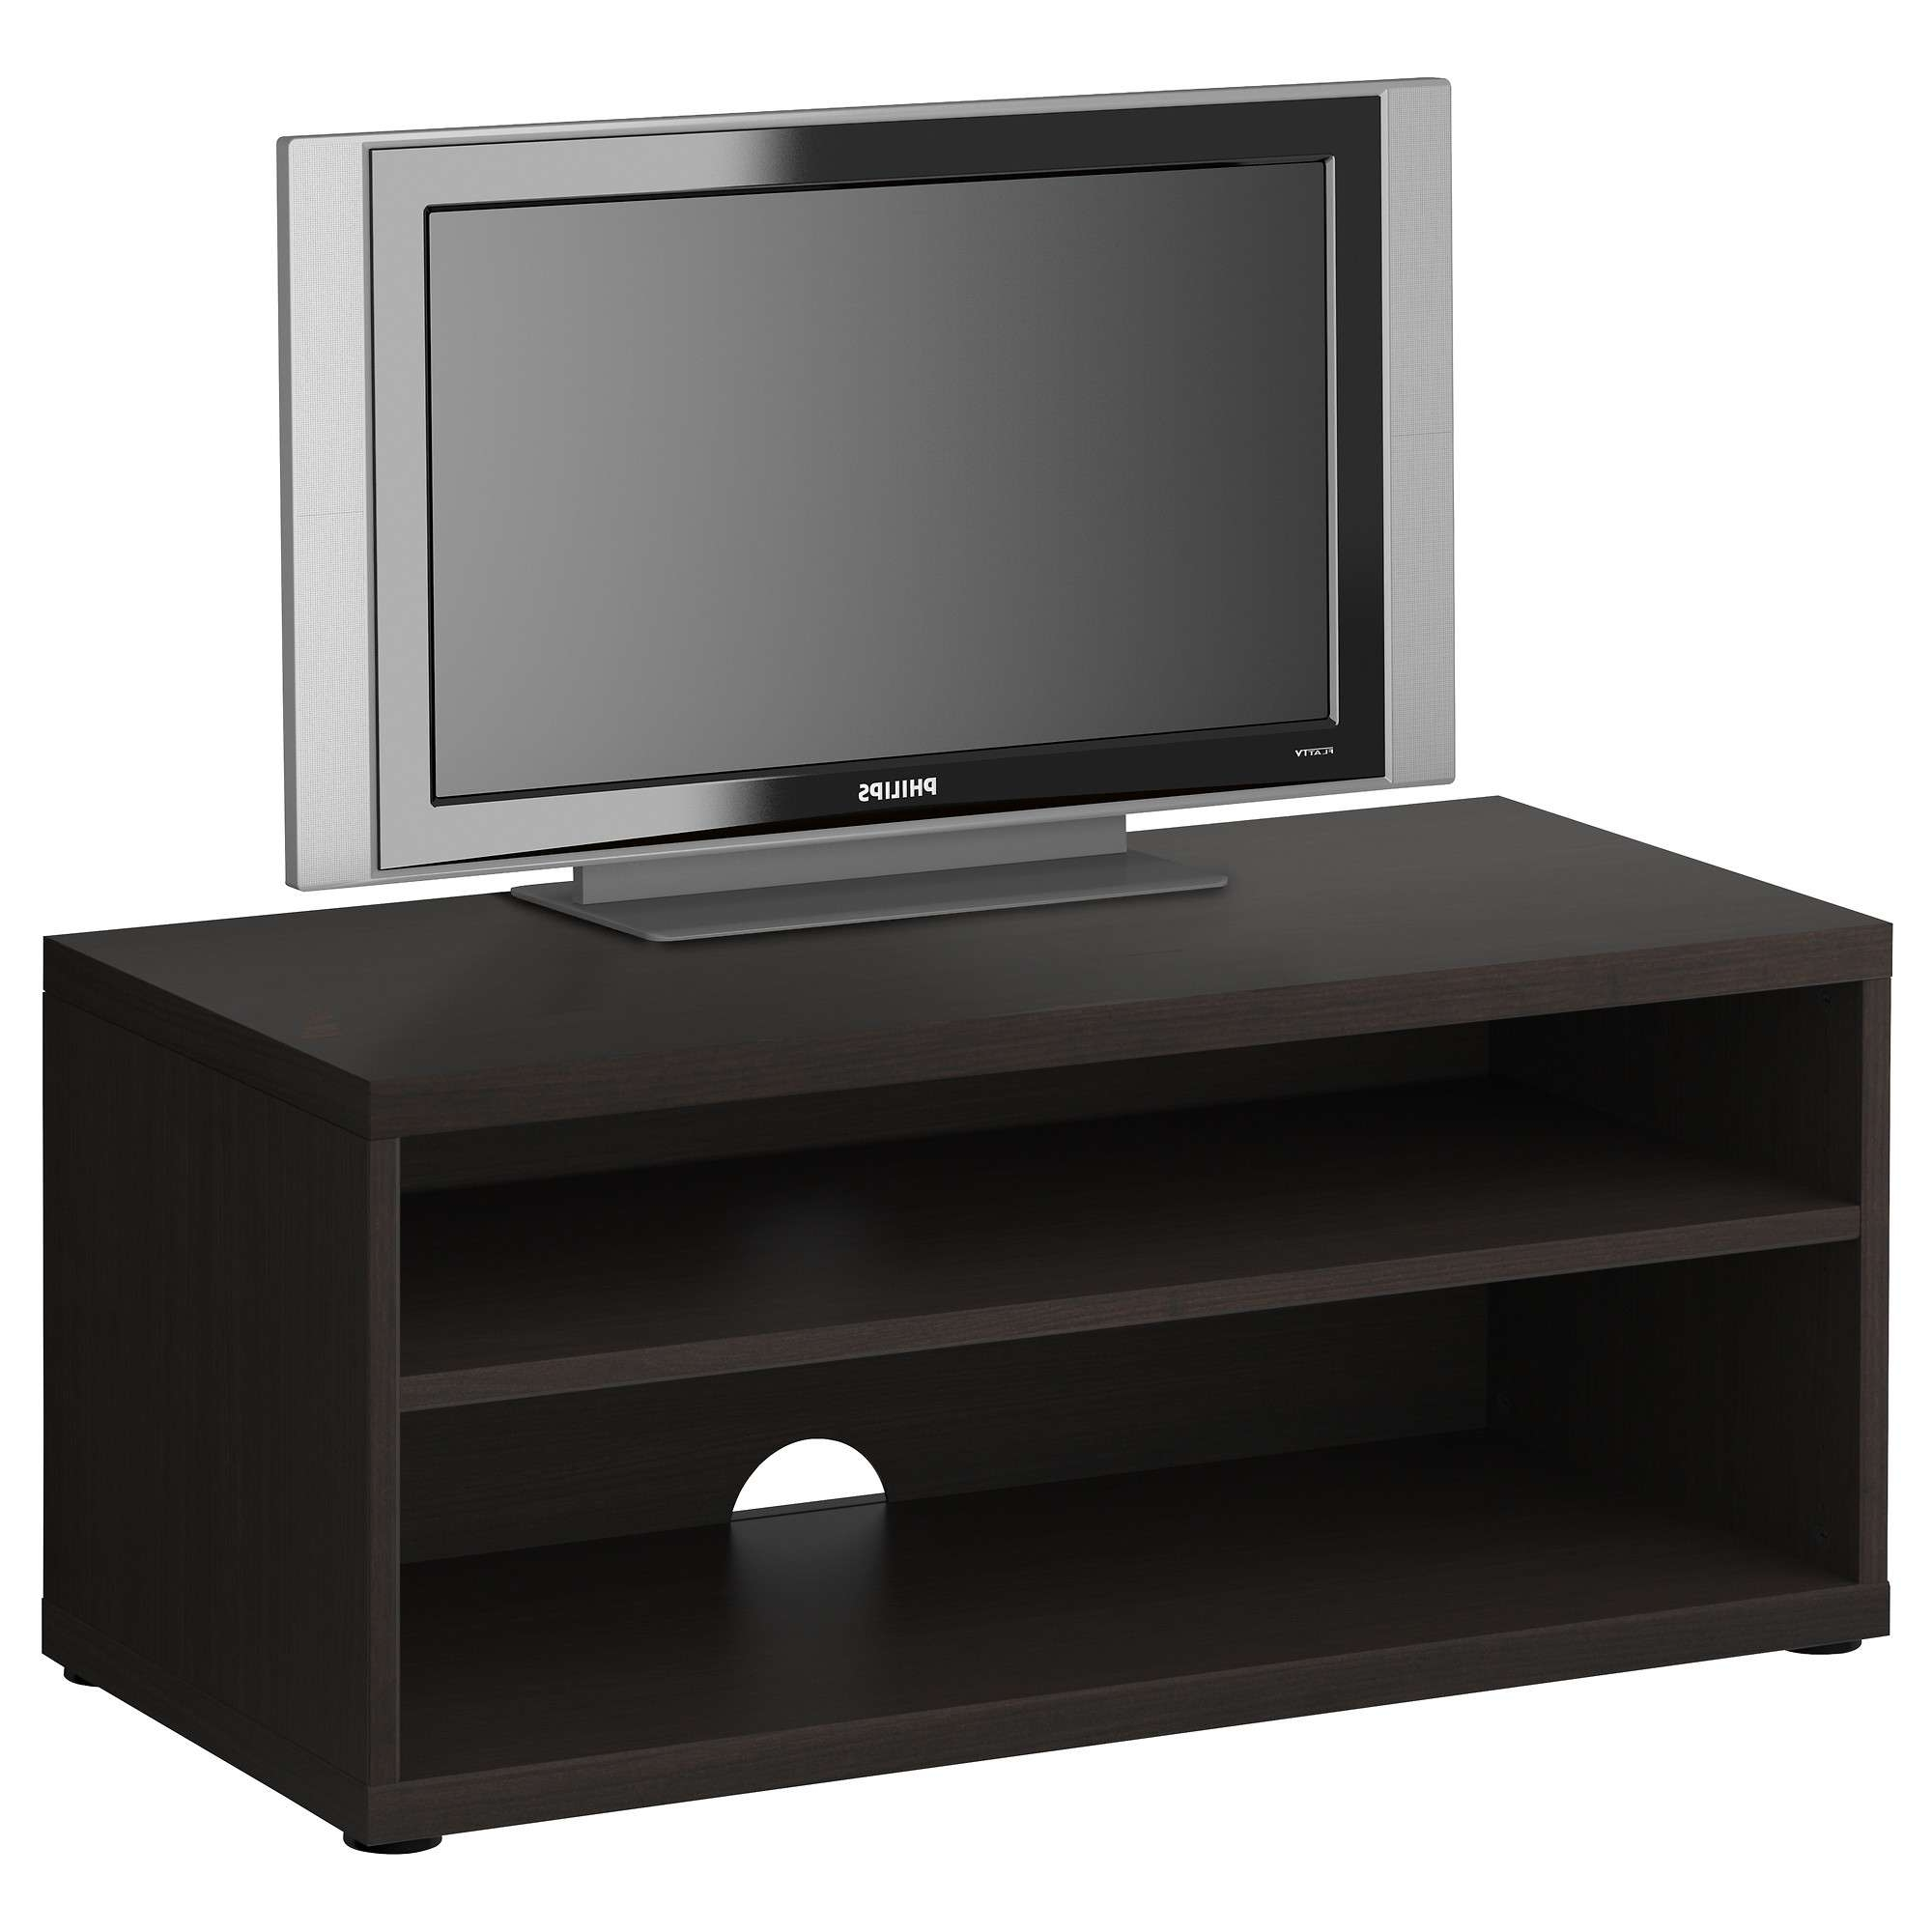 Mosjö Tv Bench Black Brown 90X40X38 Cm – Ikea Pertaining To Bench Tv Stands (View 12 of 15)